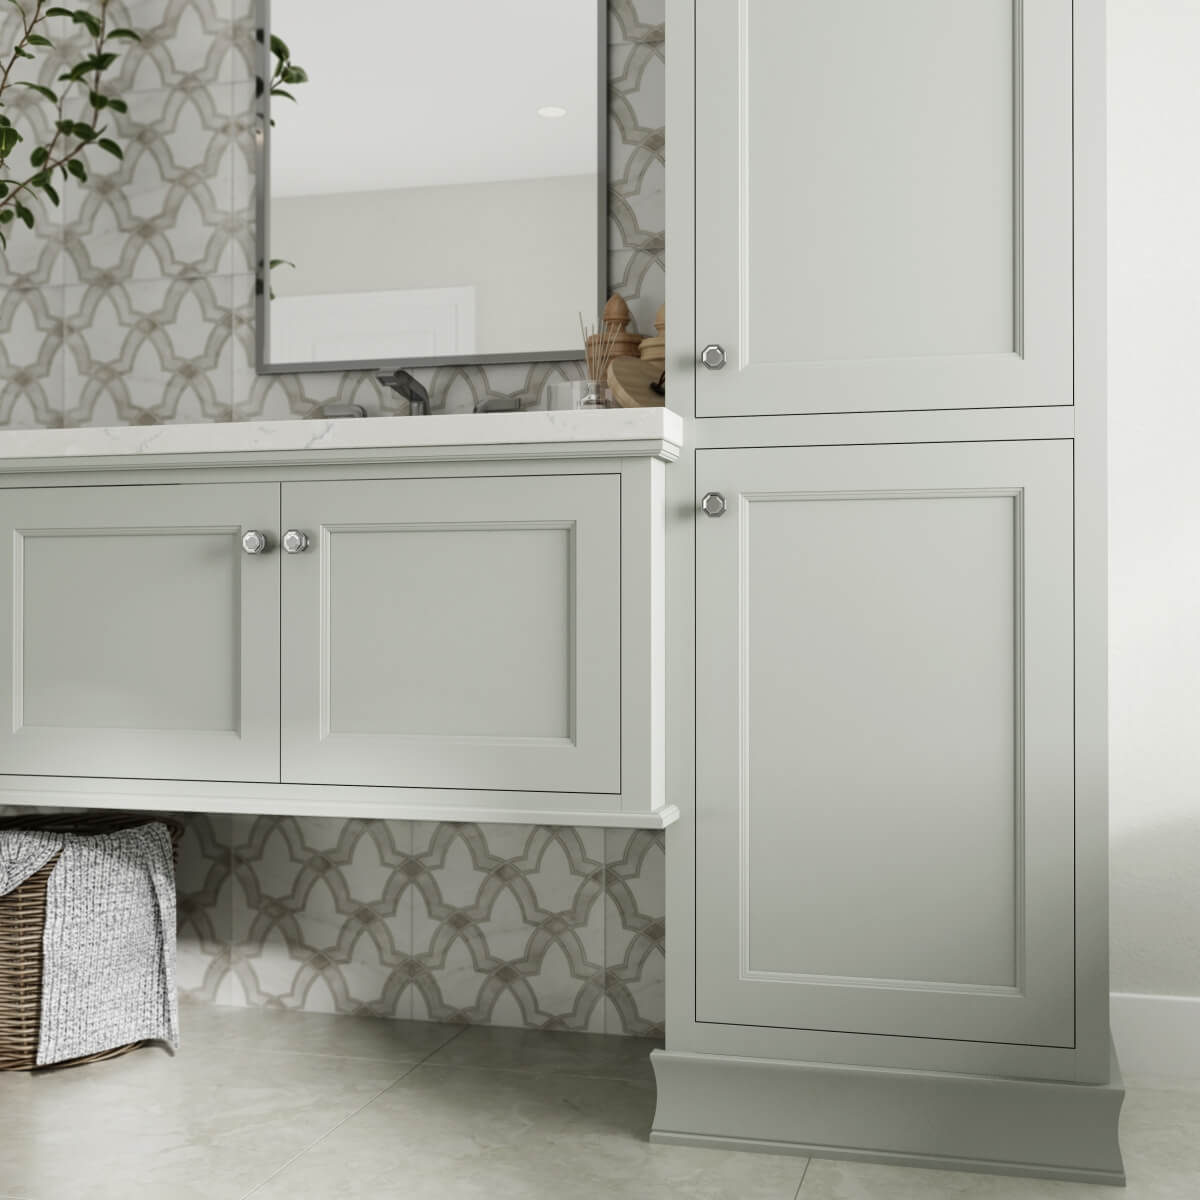 Curated Color: Silver Strand on Dura Supreme Cabinetry, Meridien door style, Inset, Wall Hung Vanity and Linen Cabinet